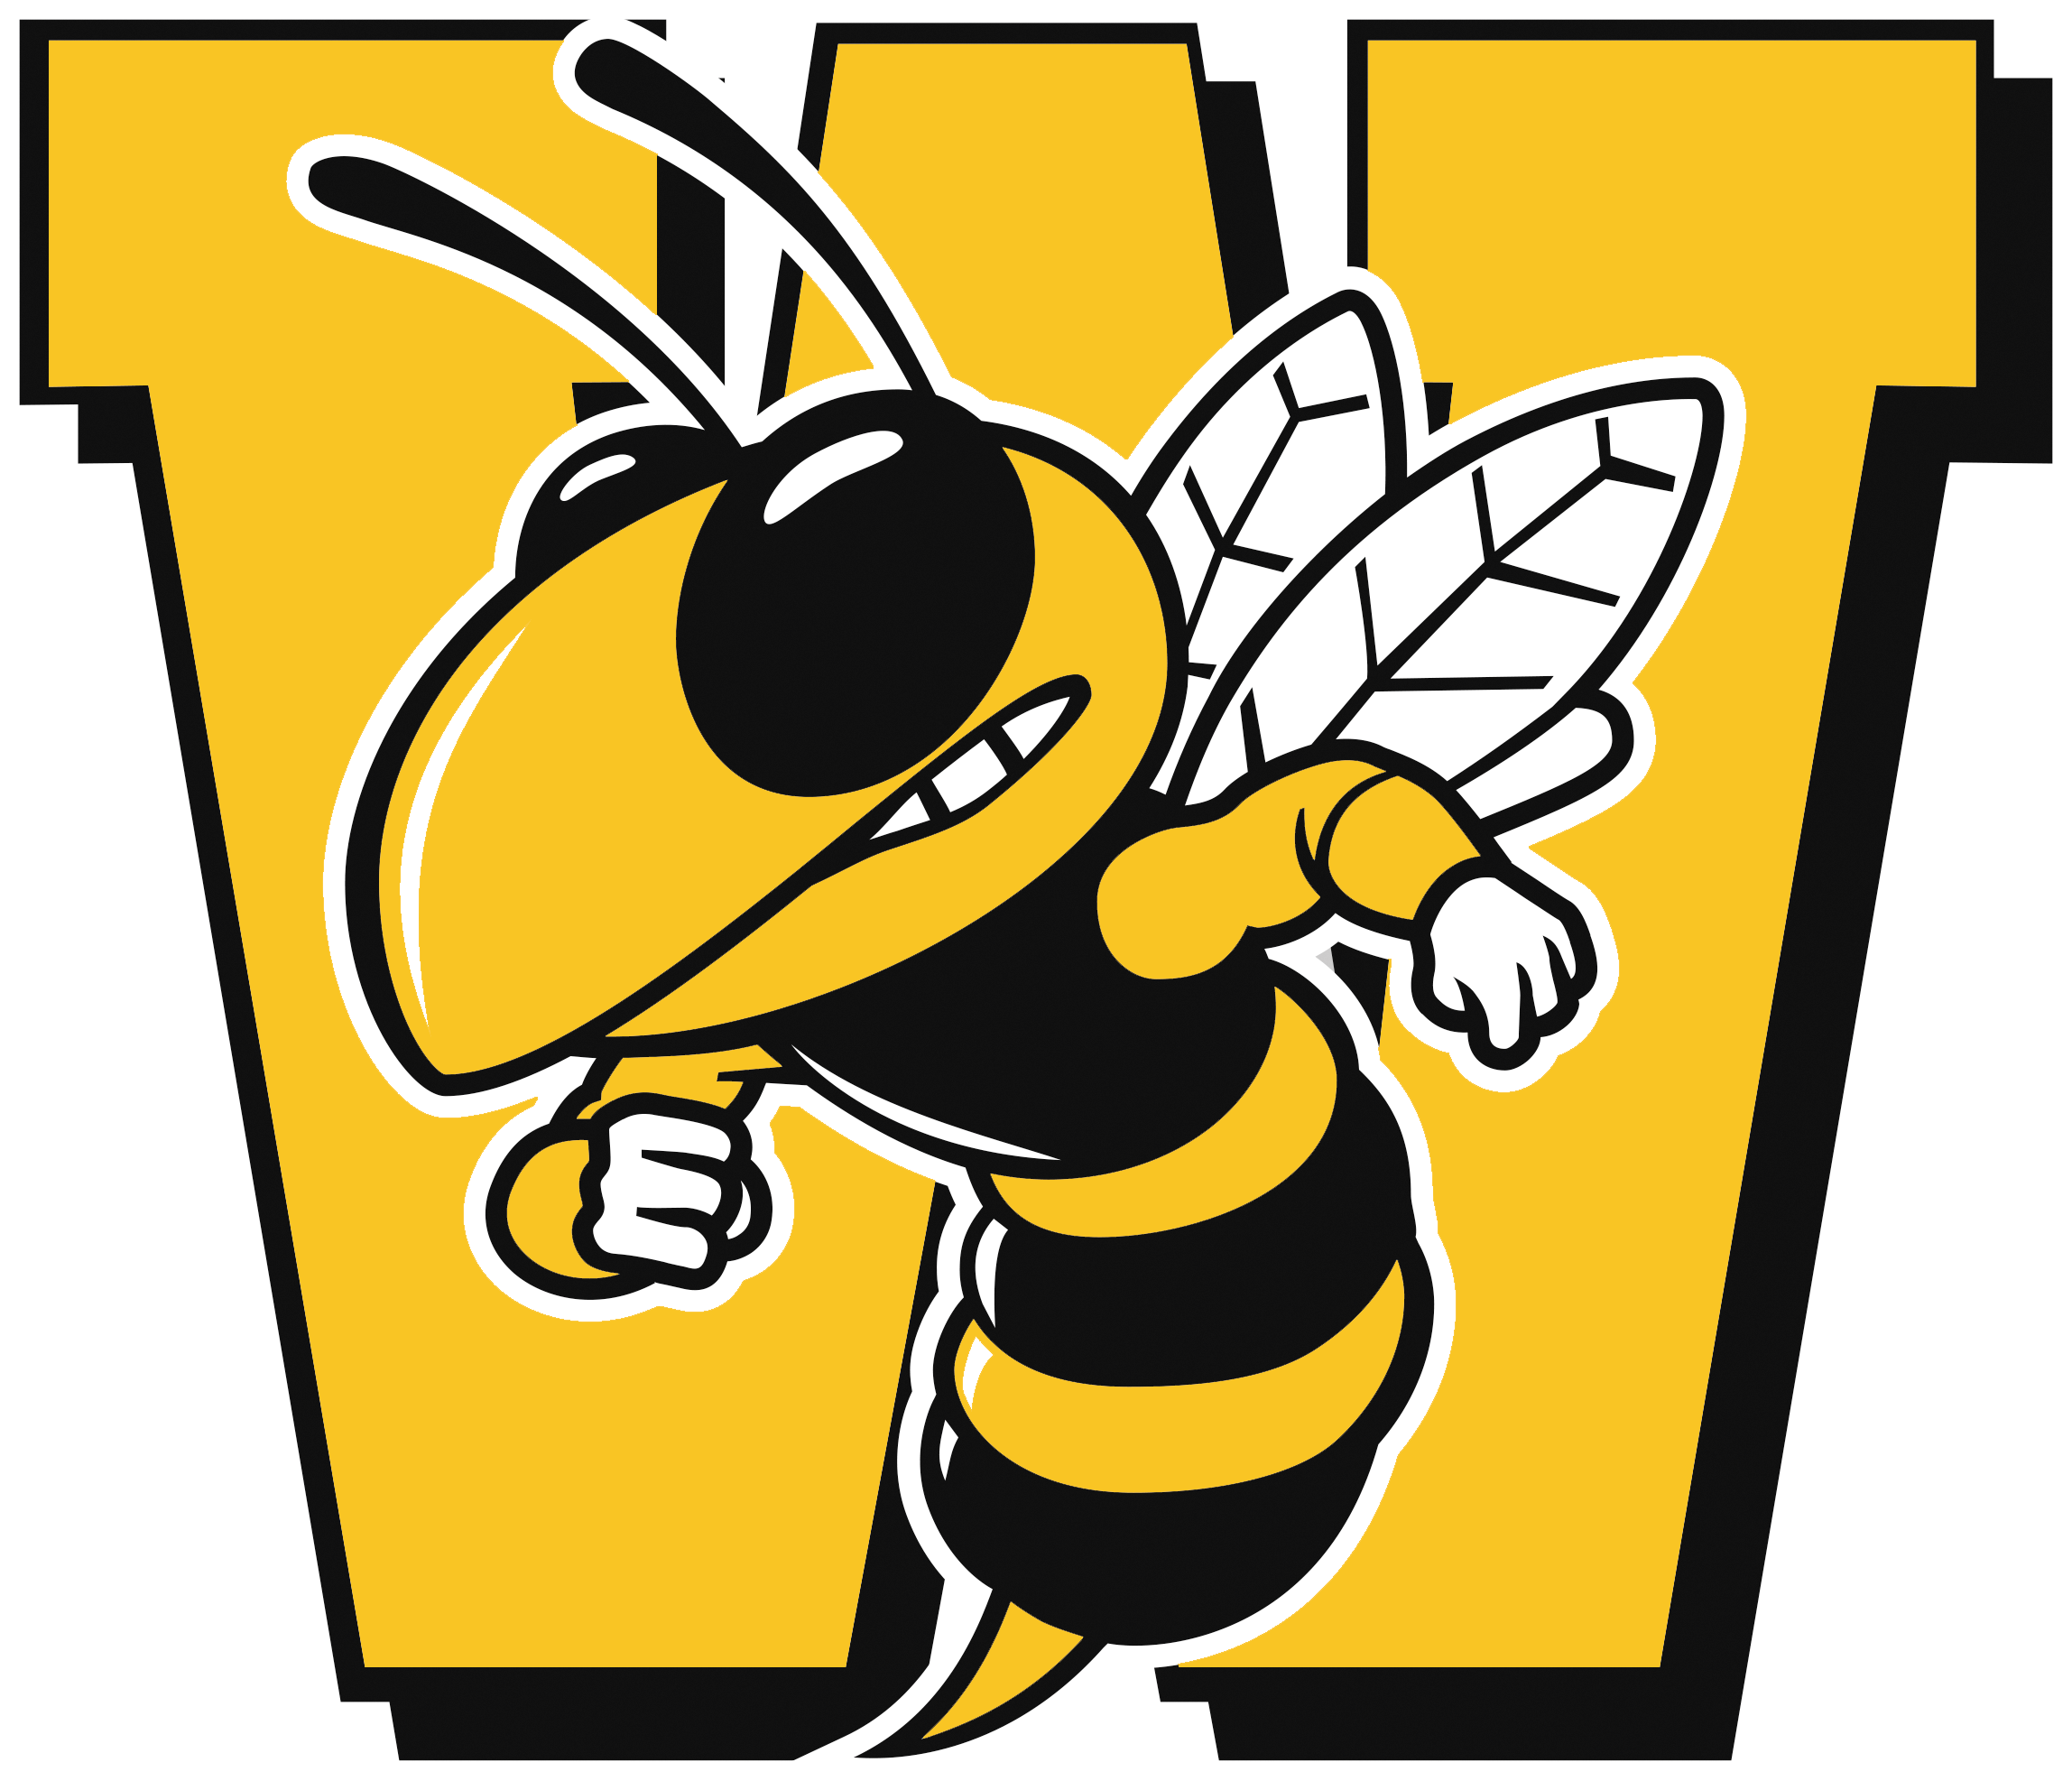 Wasatch - Team Home Wasatch Wasps Sports